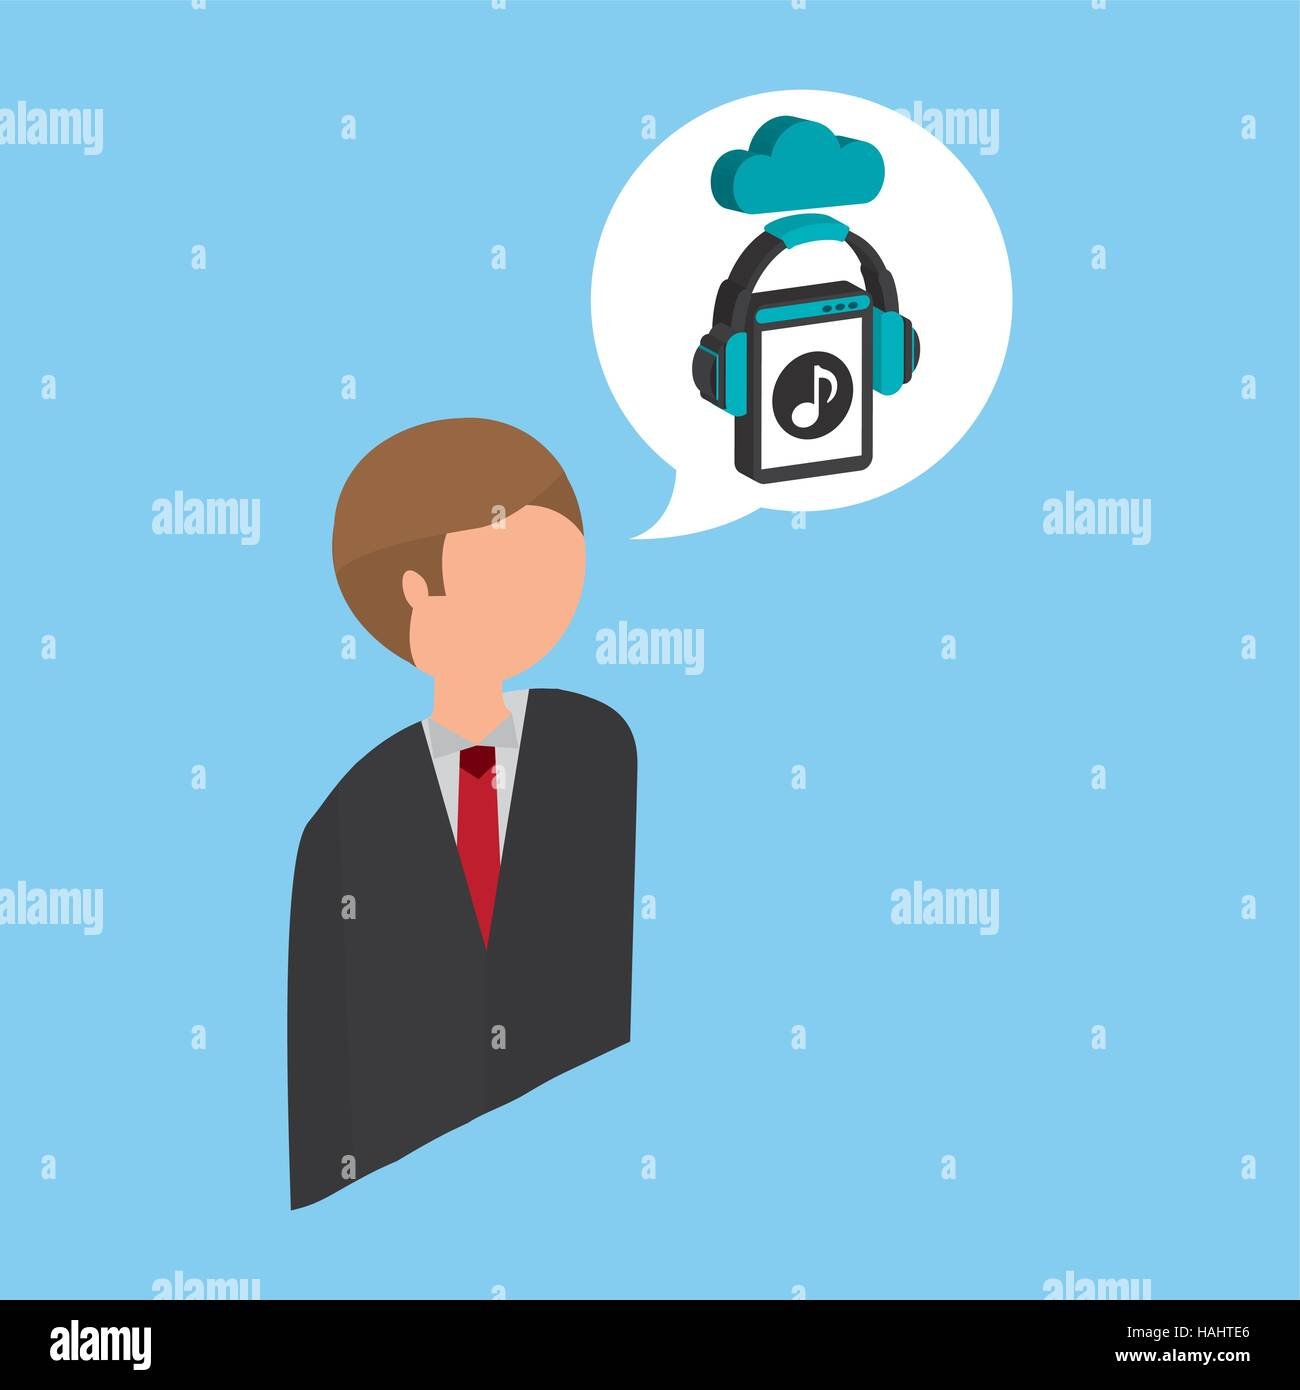 businessman music streaming design vector illustration eps 10 - Stock Image